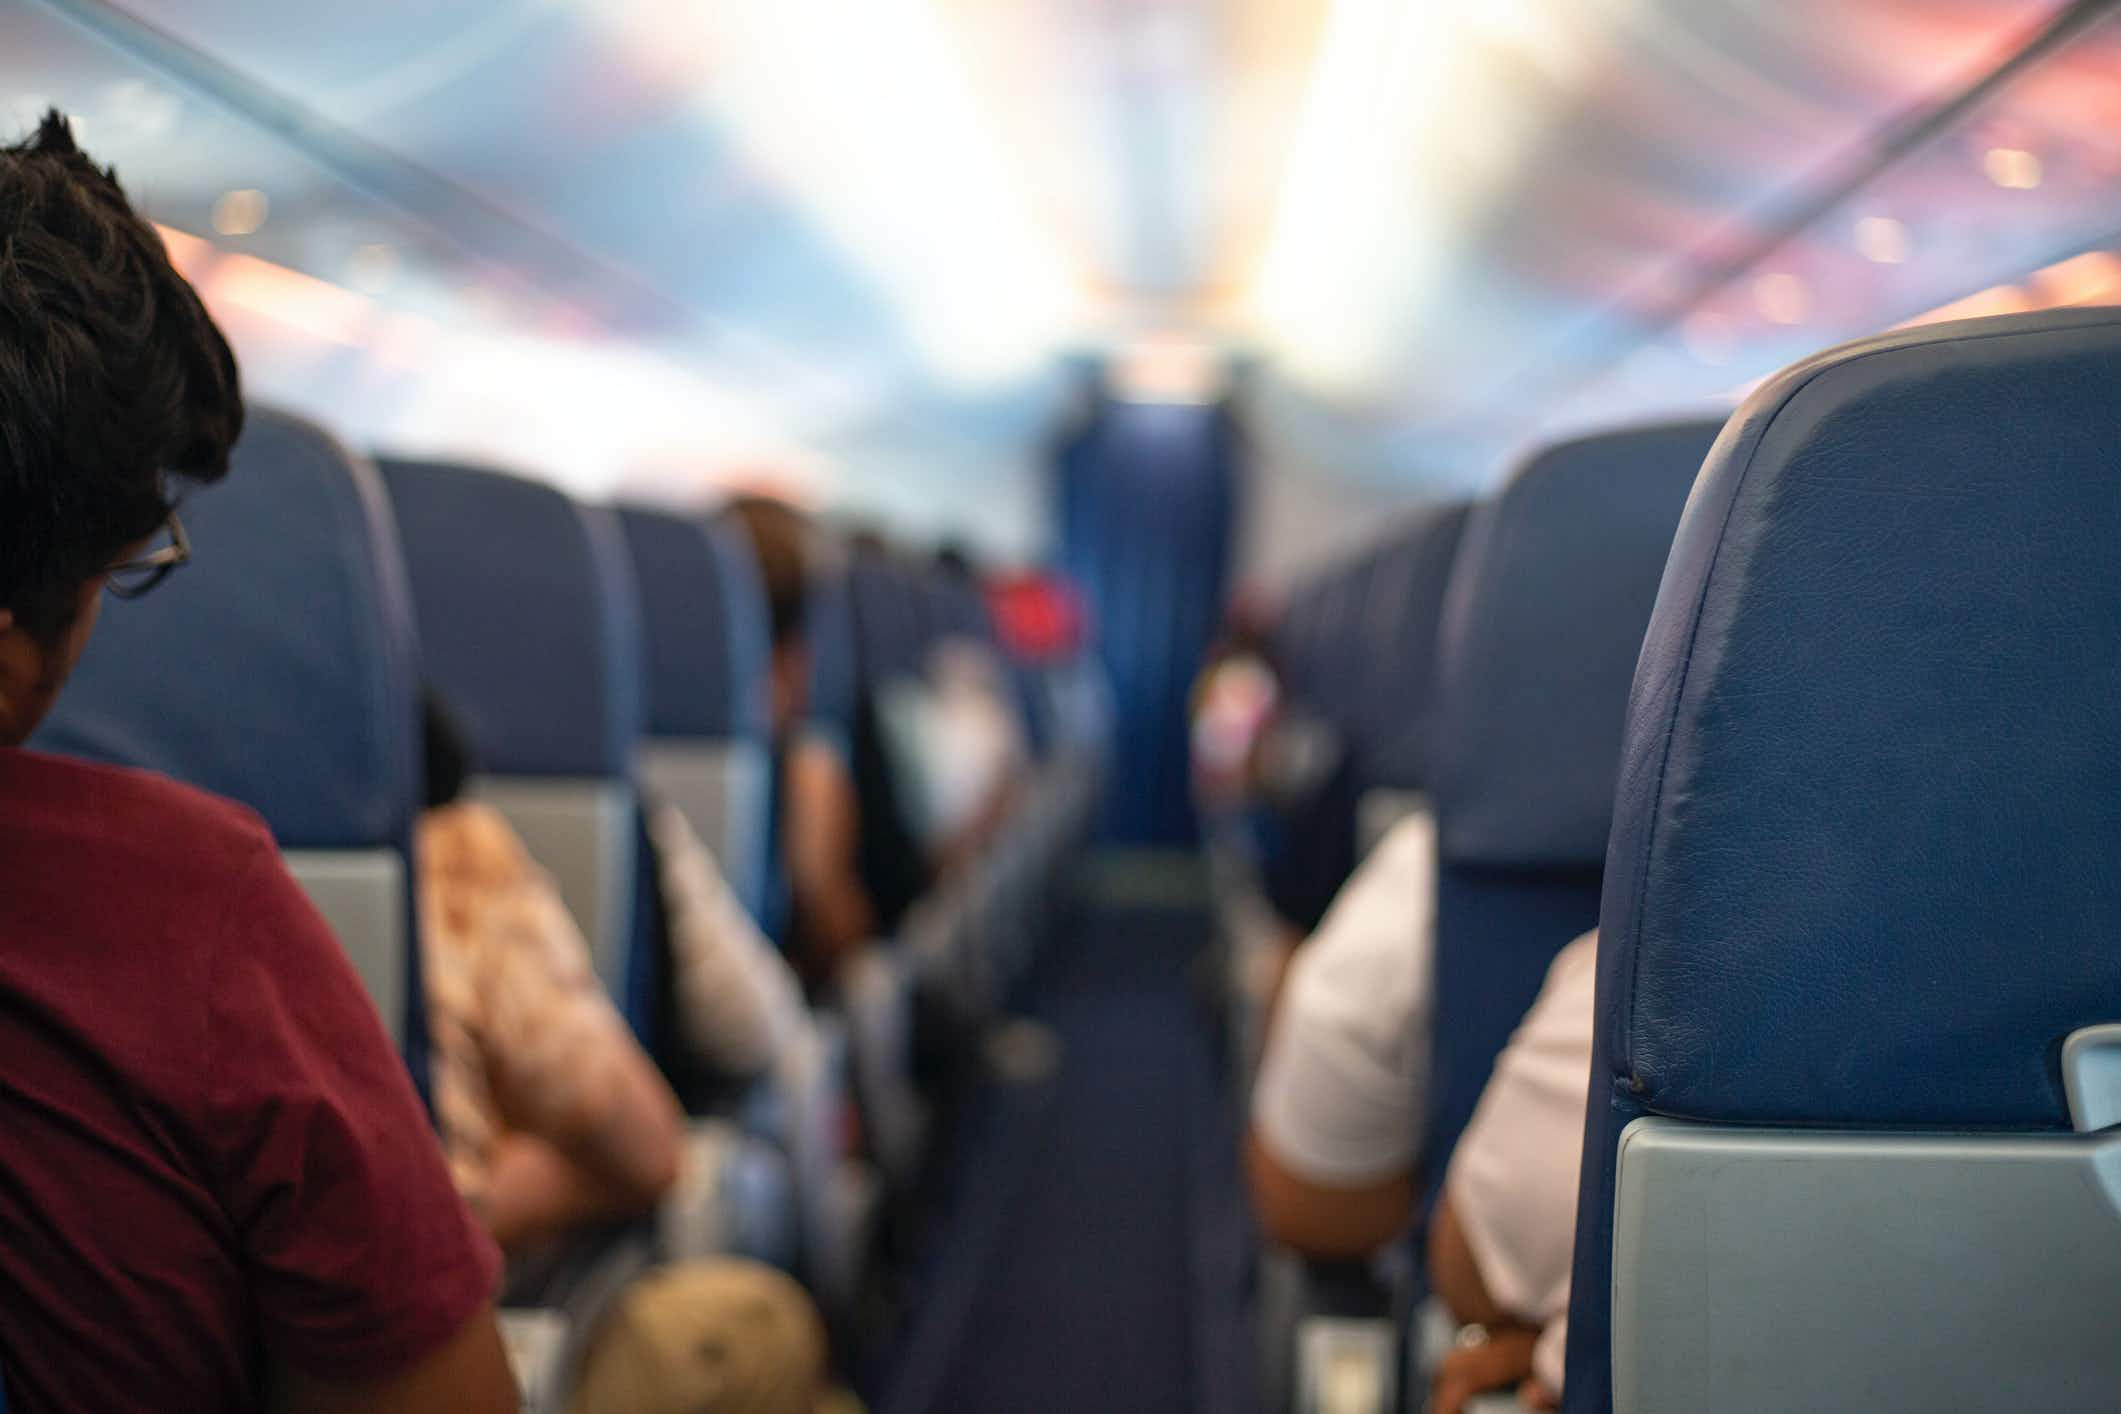 What happens if someone on your flight is diagnosed with COVID-19?